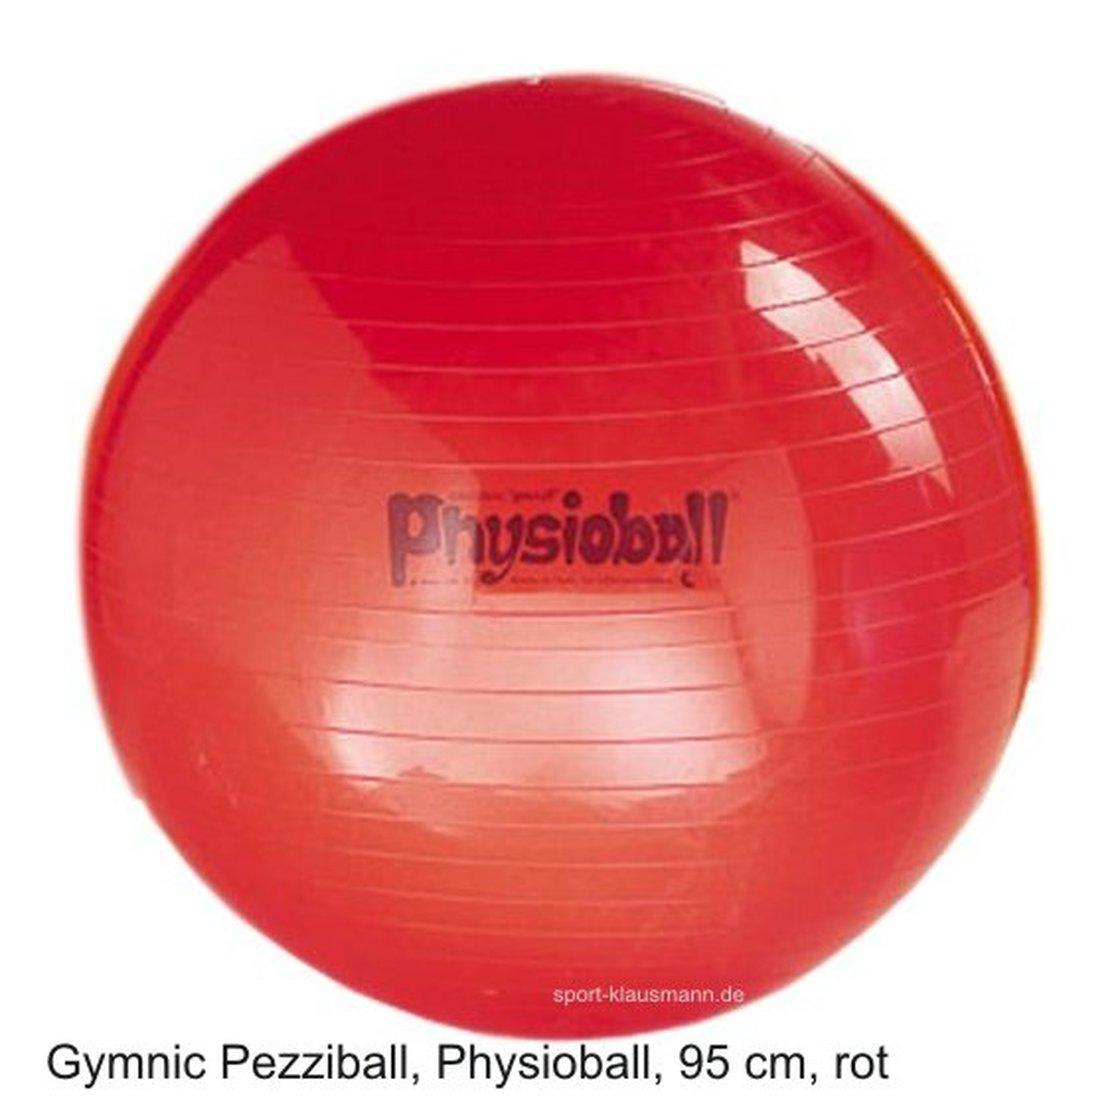 pezzi gymnastikball physioball sitzball 95 cm rot. Black Bedroom Furniture Sets. Home Design Ideas